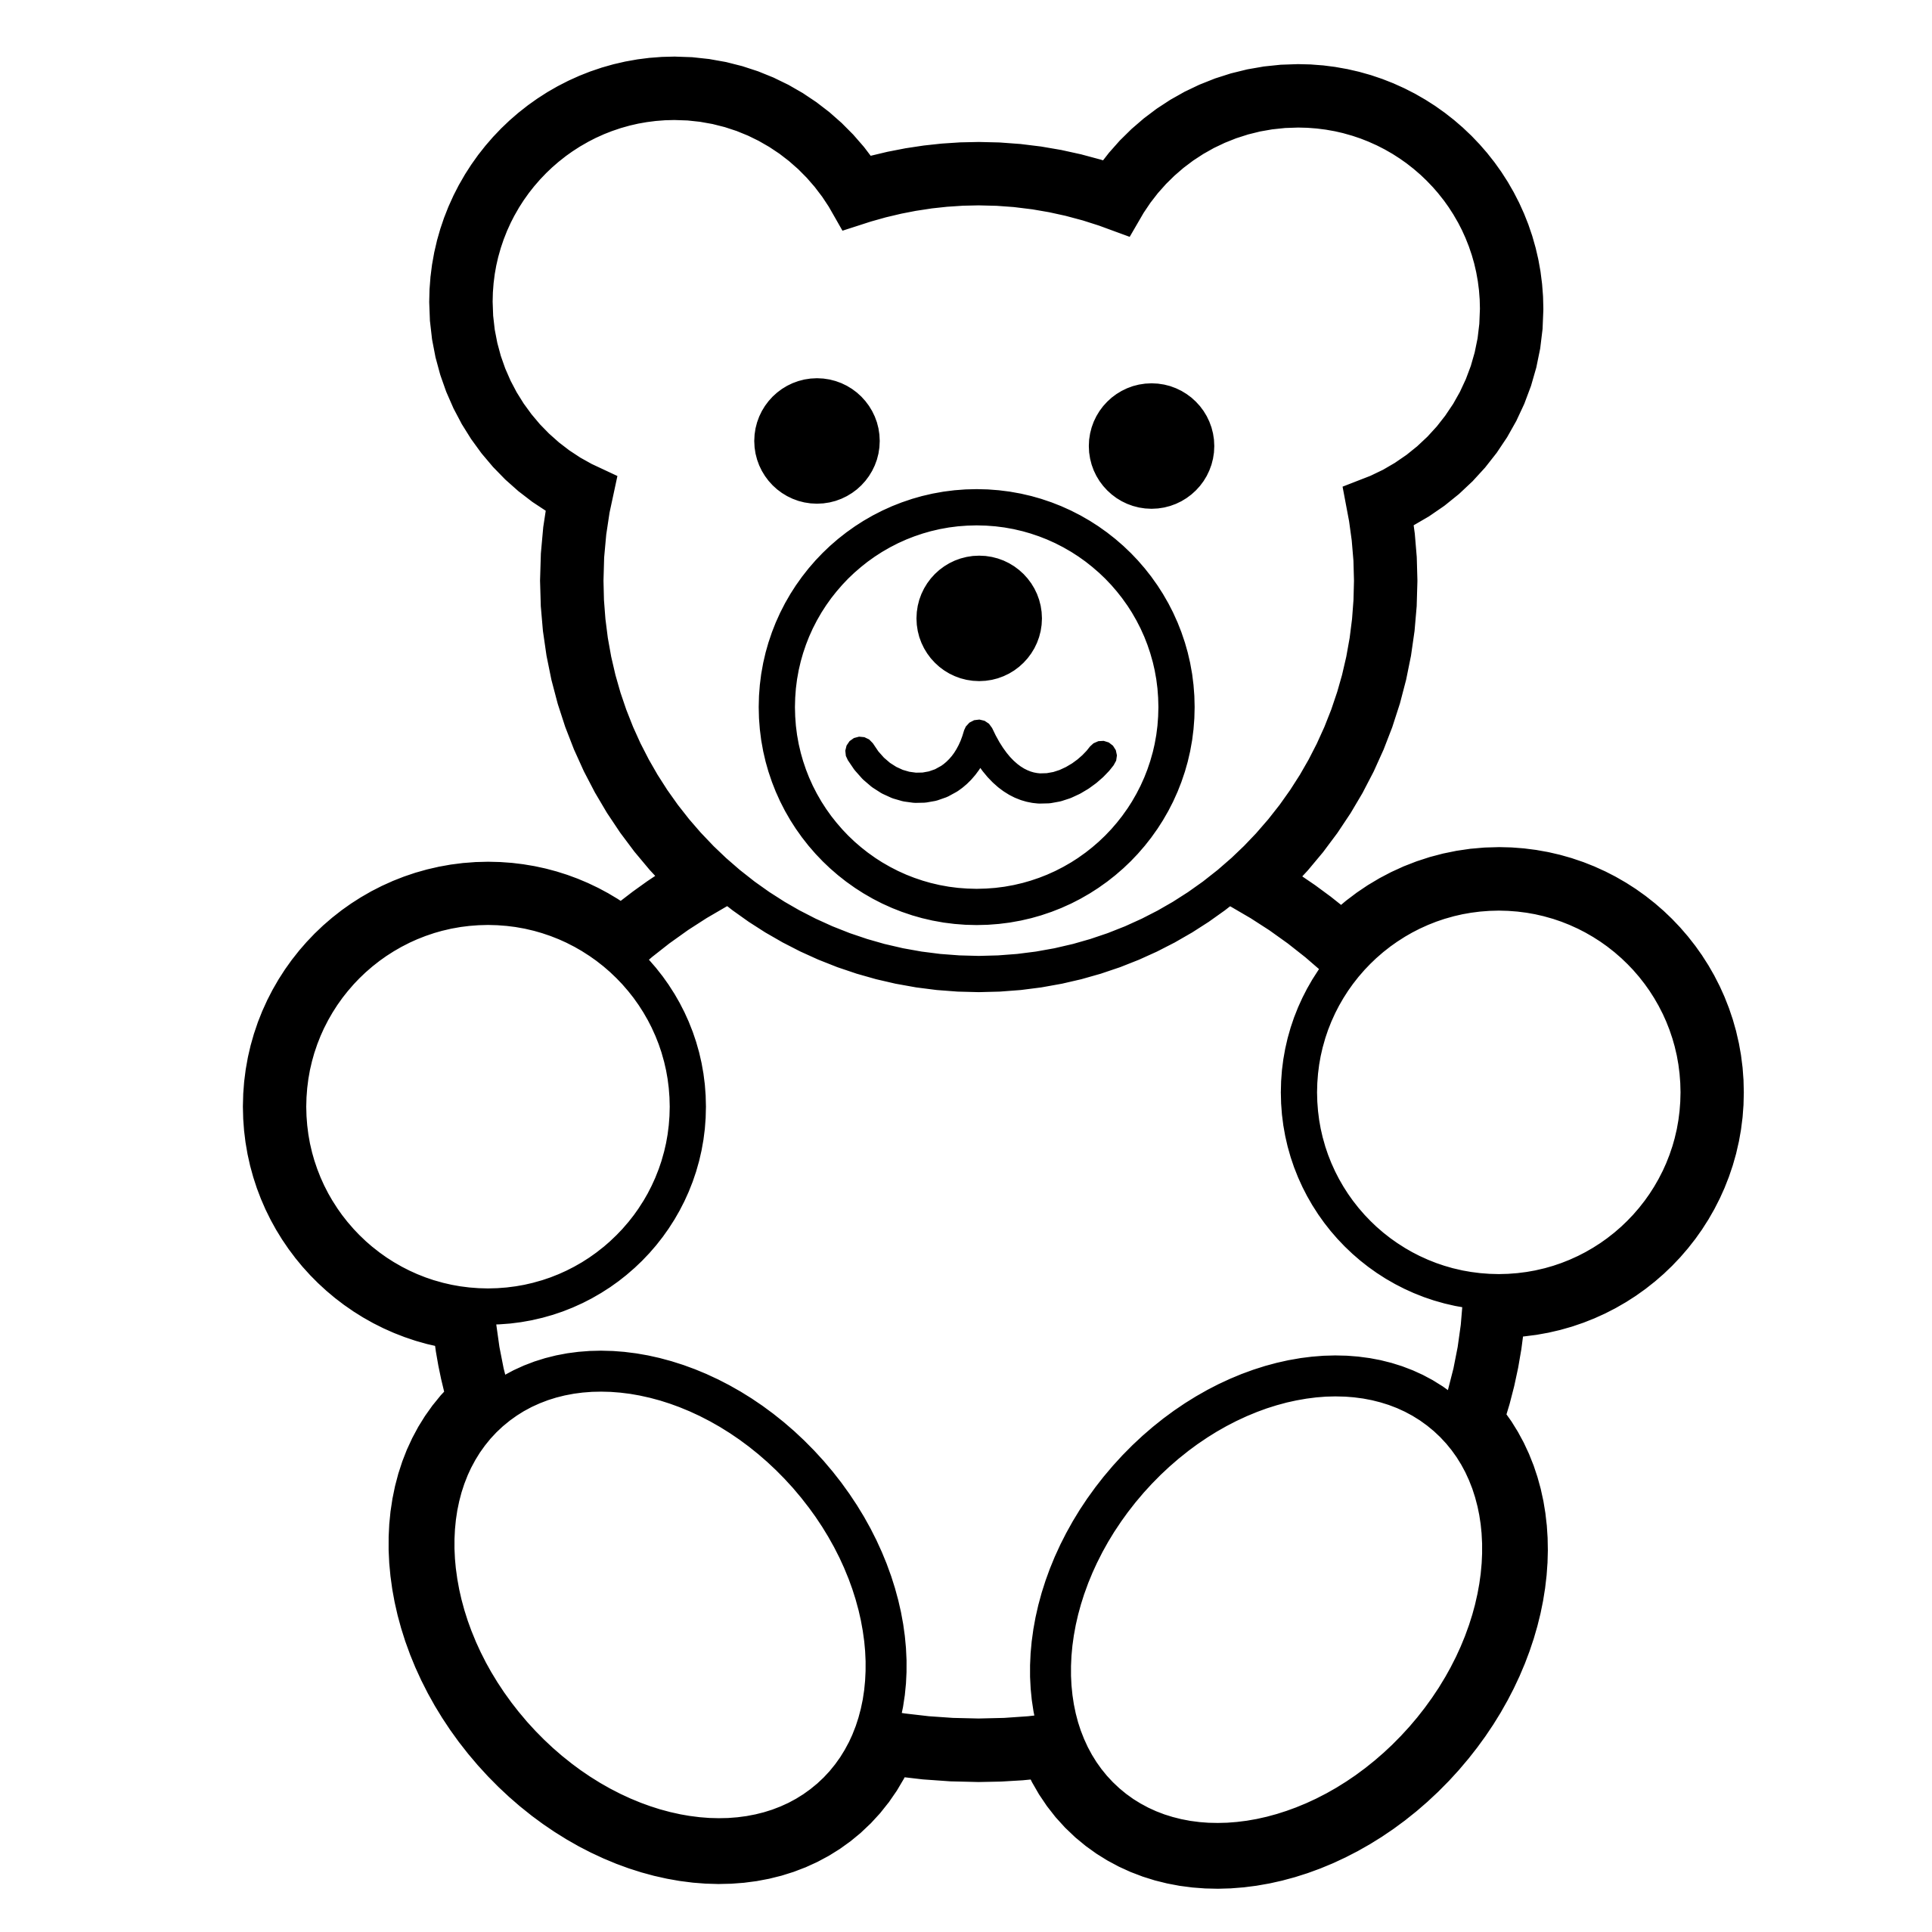 png black and white library Teddy bear stencil idea for baby quilt